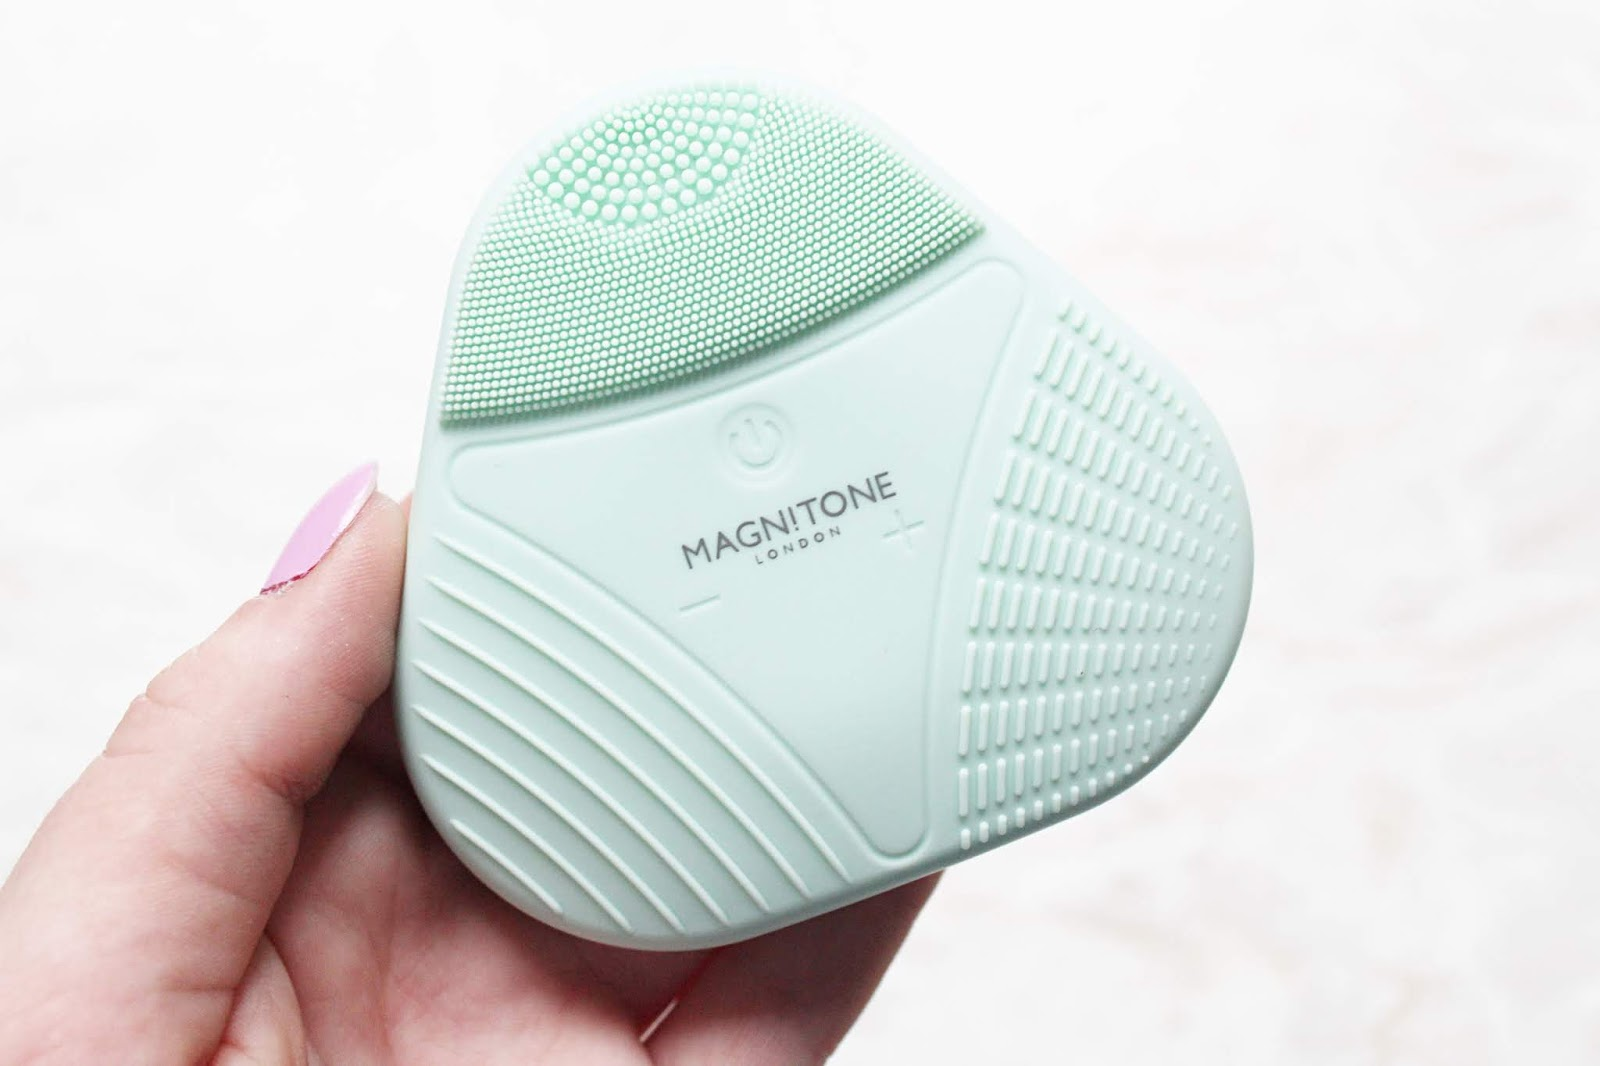 Magnitone Xoxo Silicone Cleansing Brush Review